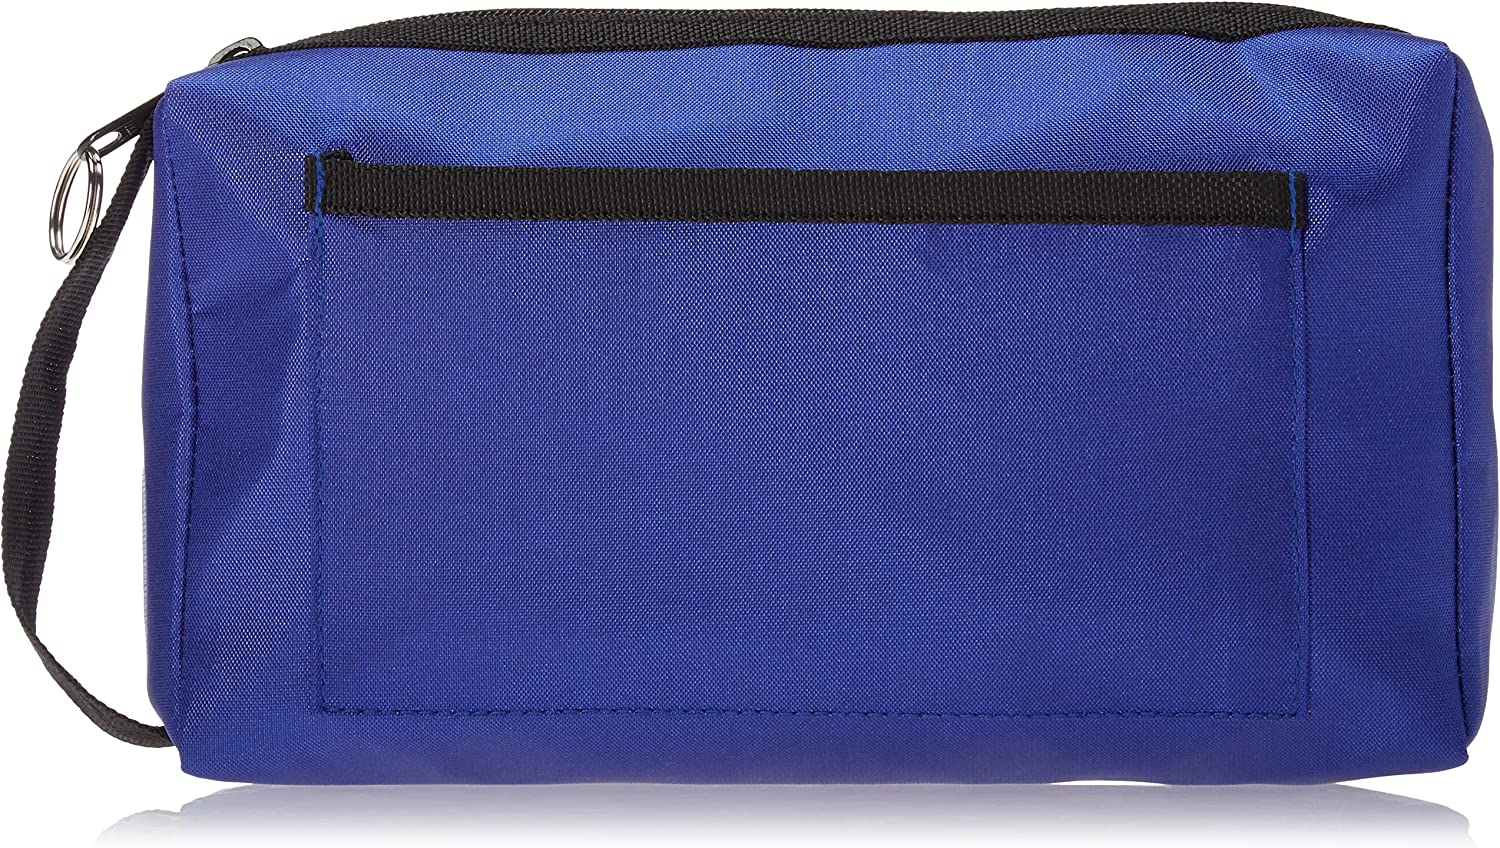 Prestige Medical Compact Carry Case Ceil Blue